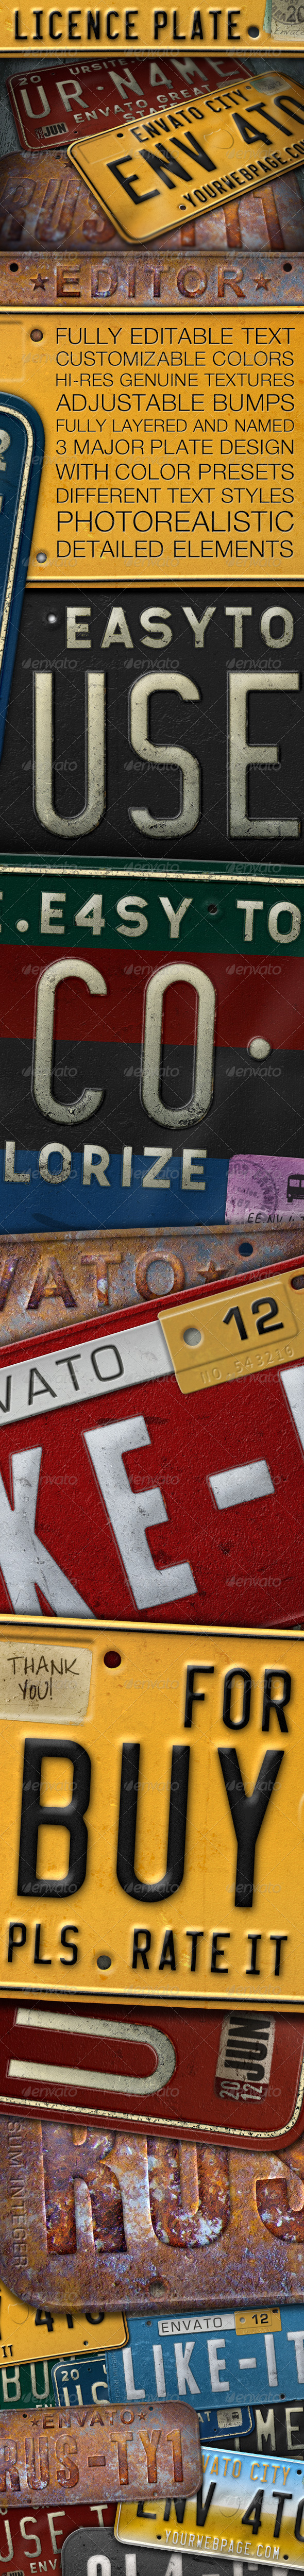 License Plate Editor - Photoshop Add-ons